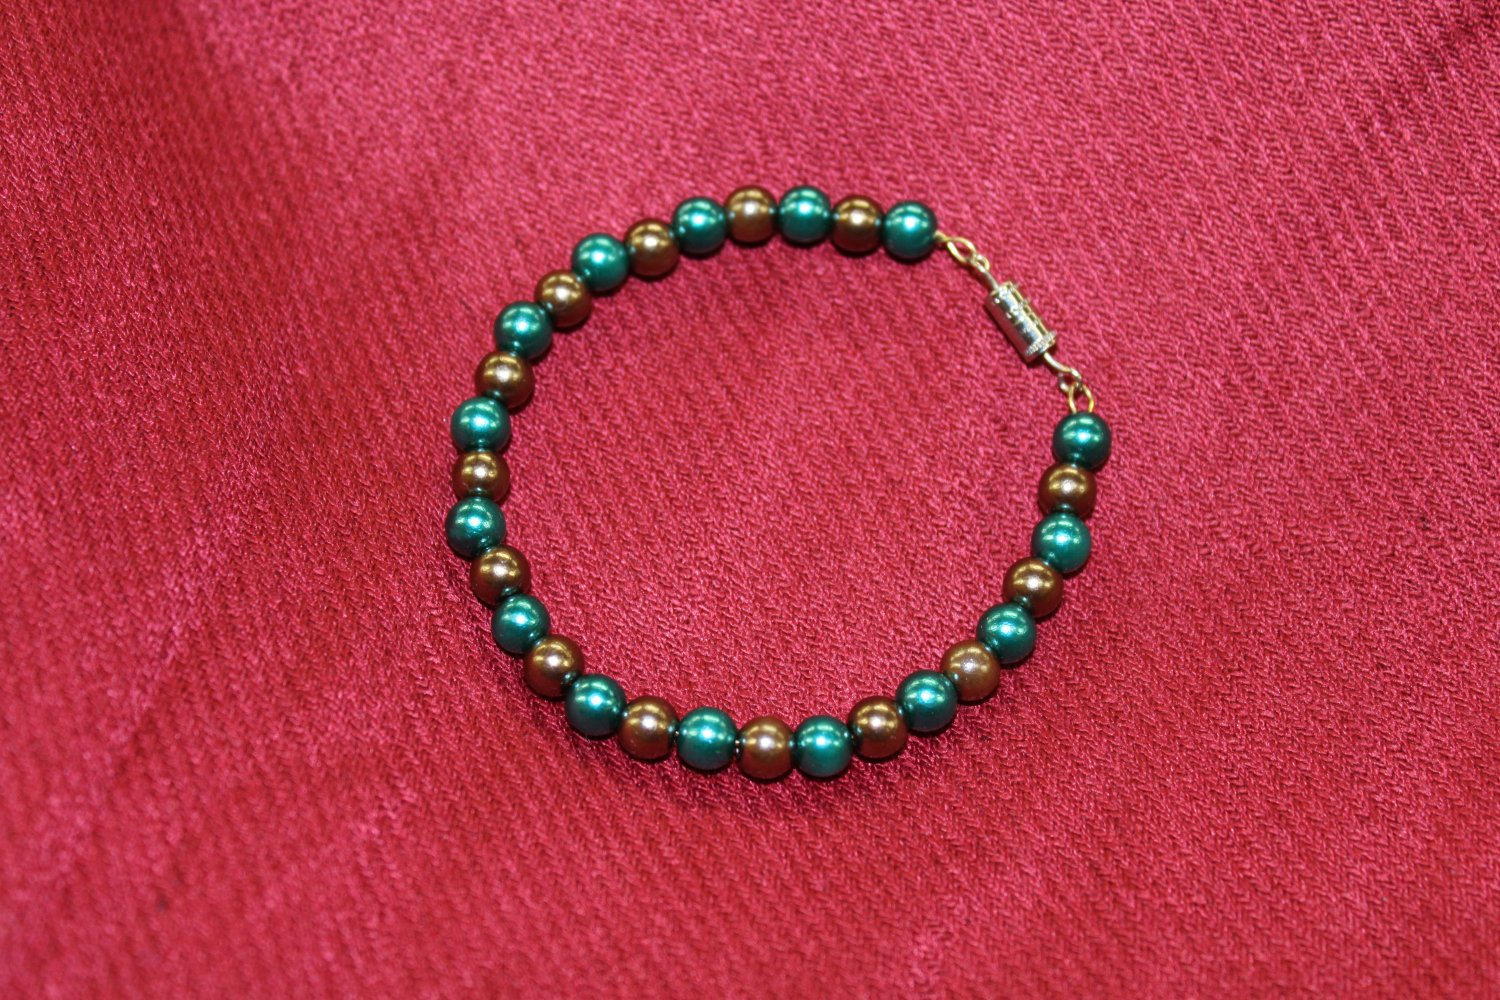 Green and Brown Bracelet